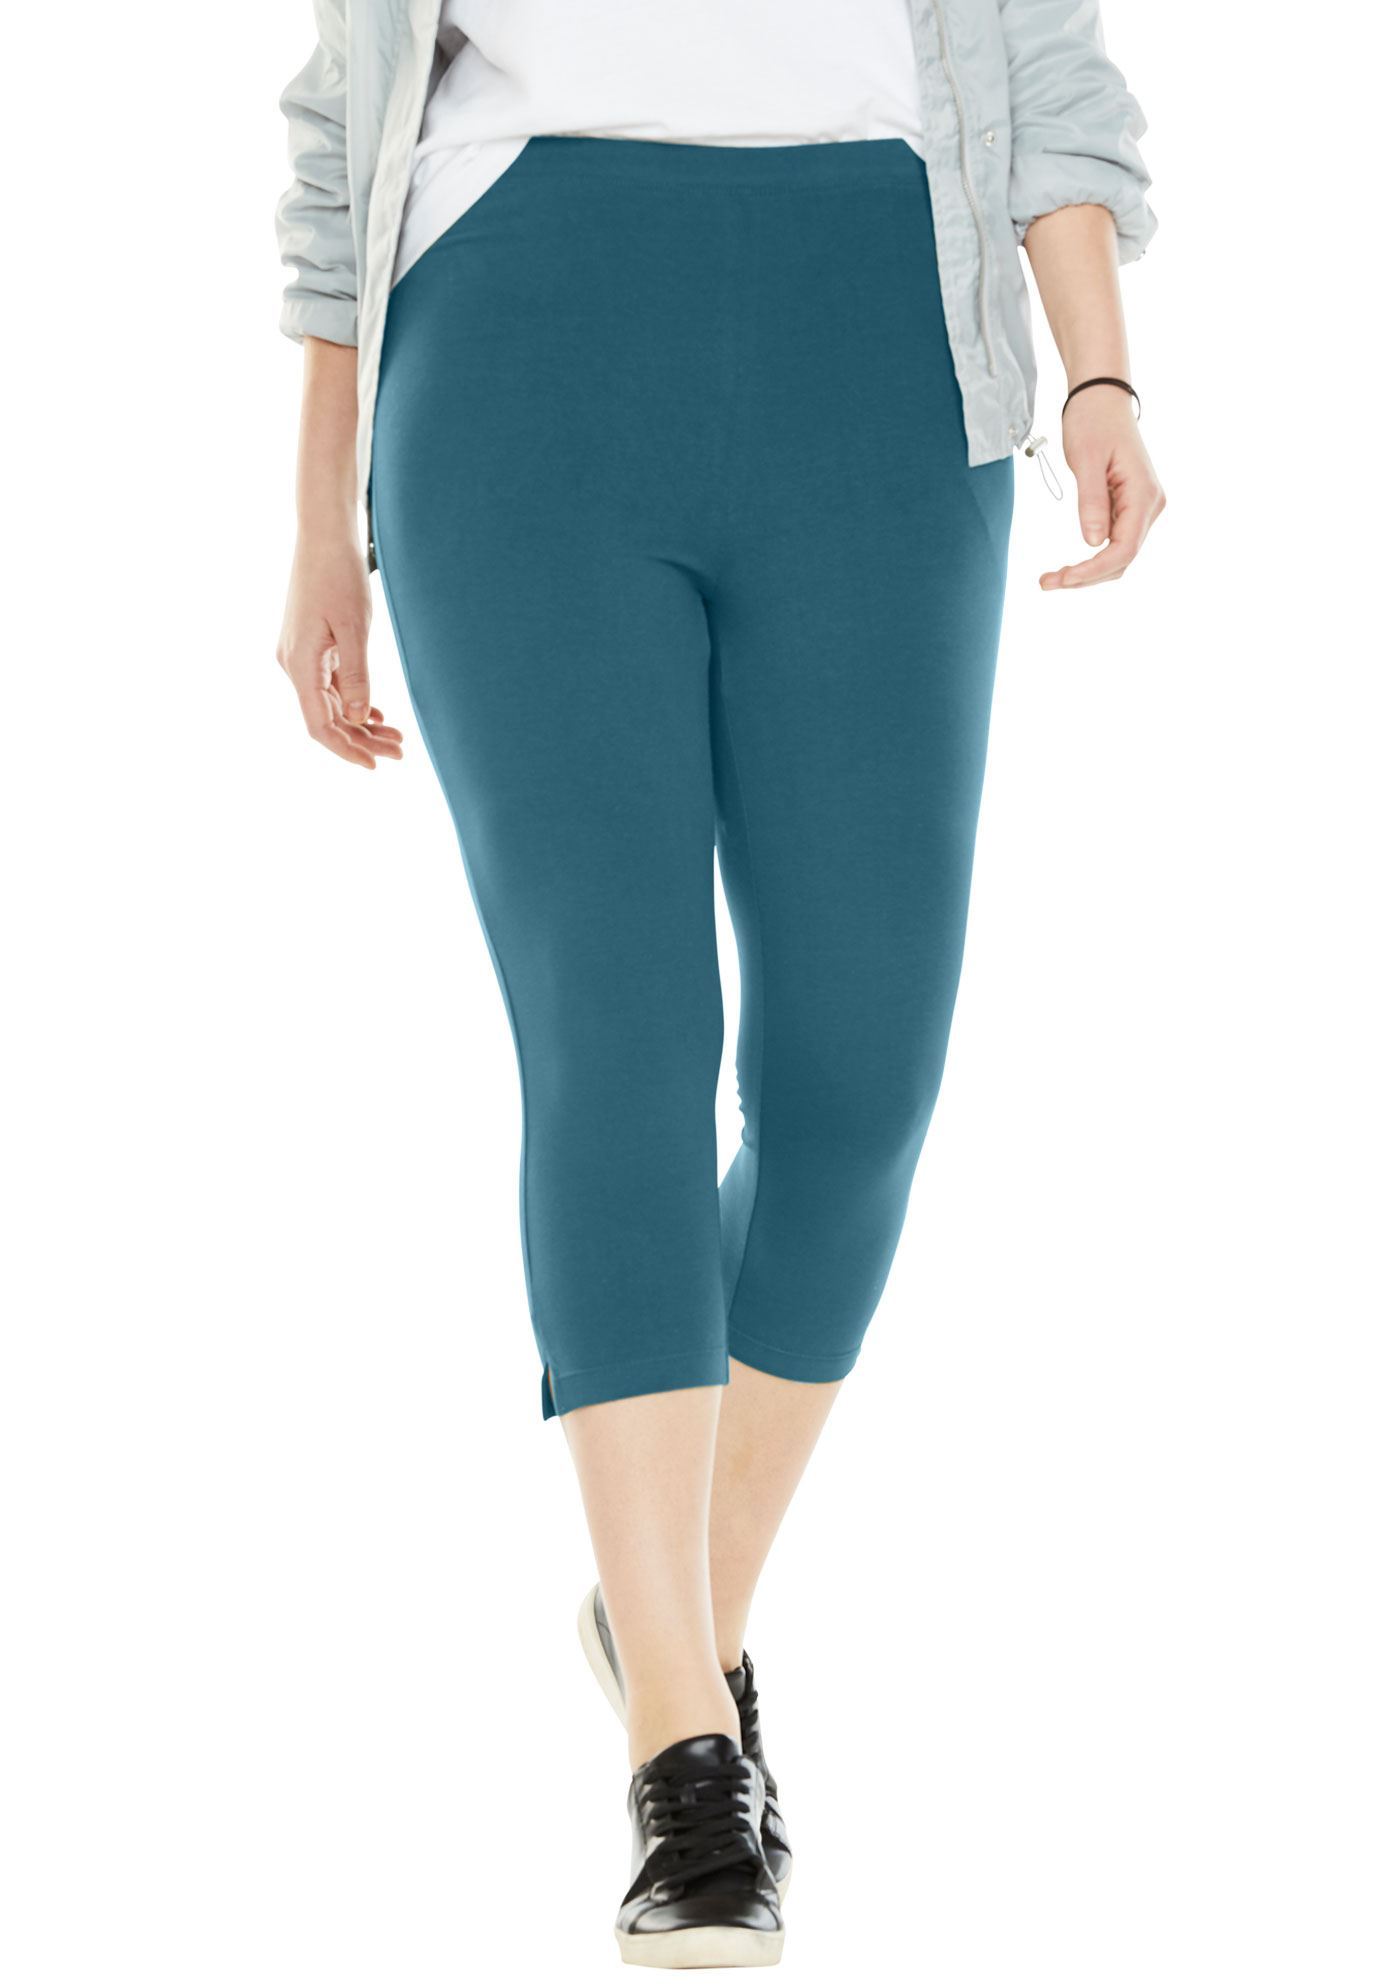 Plus Size Stretch Cotton Capri Legging